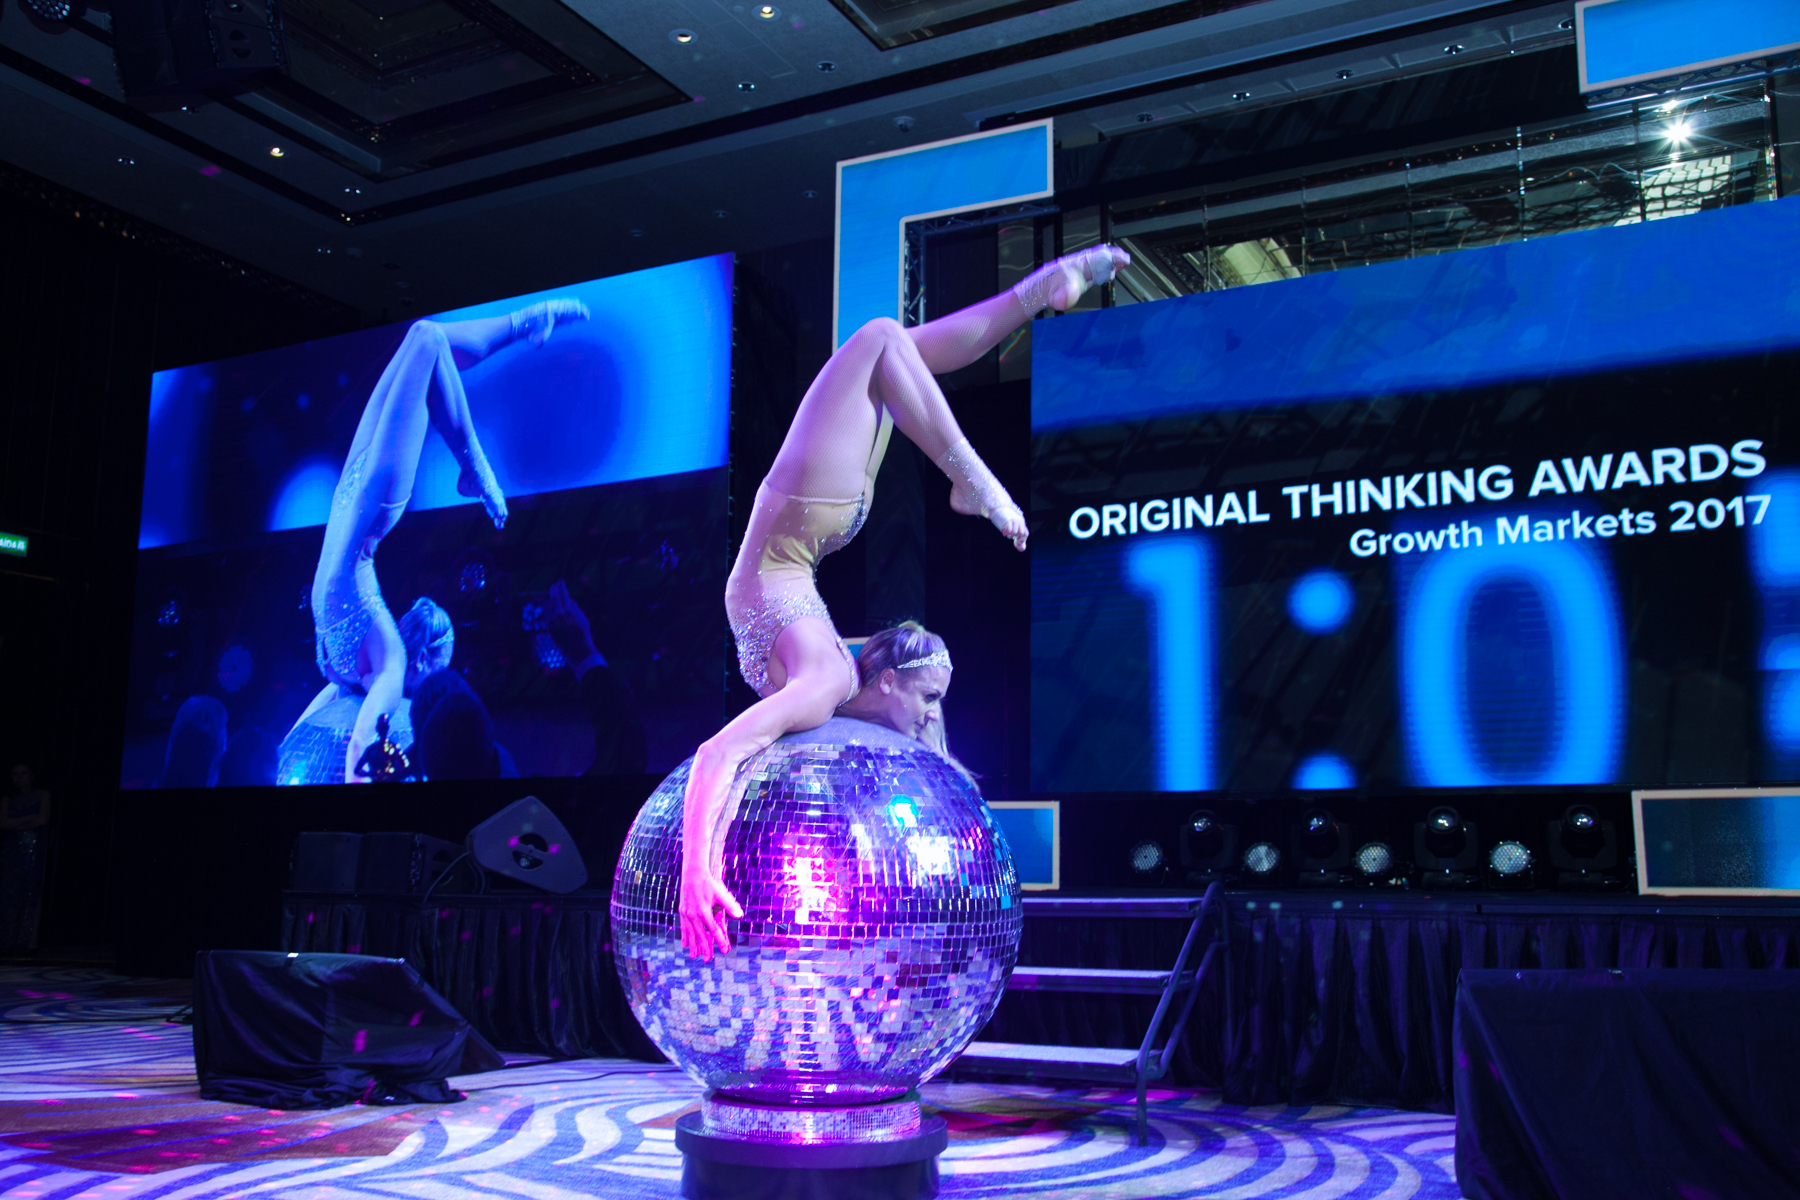 Mirror Ball Acrobat Hand Balancing Act Contortionist